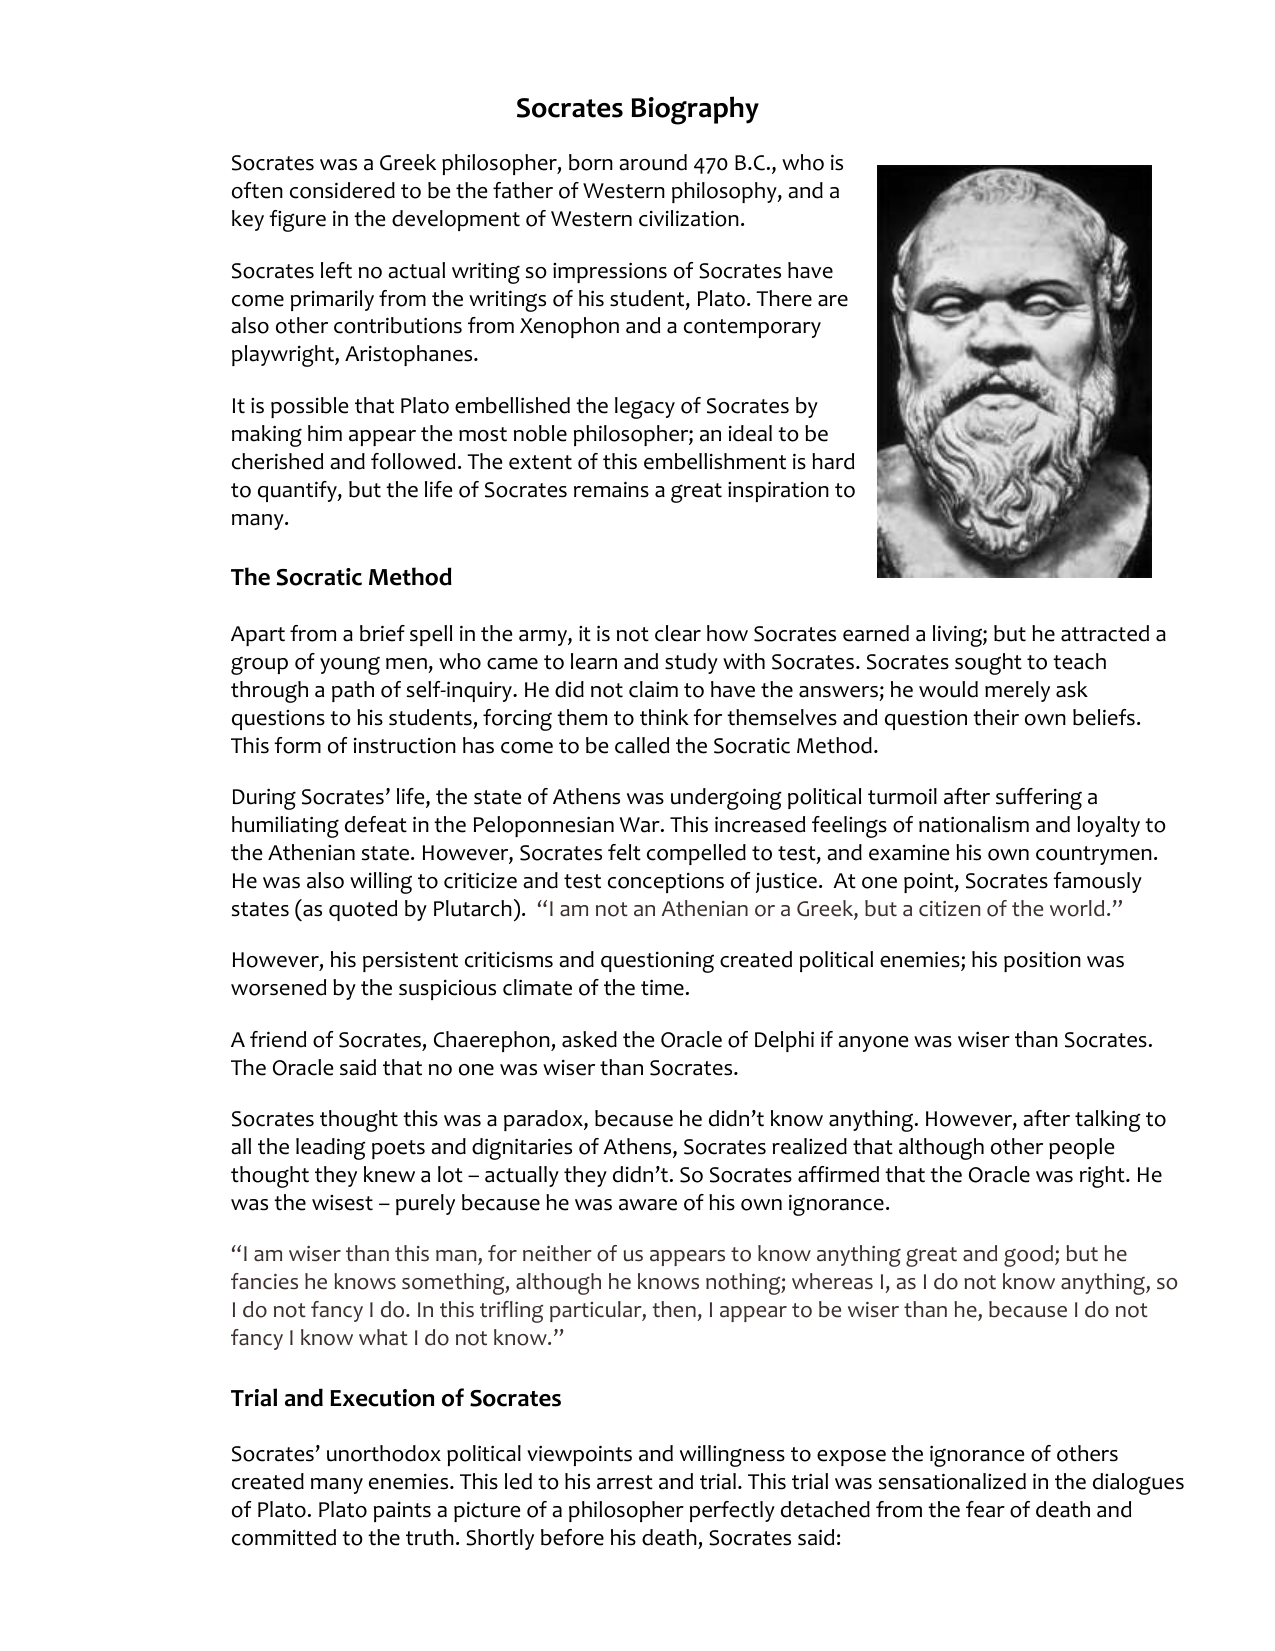 socrates and knowledge essay